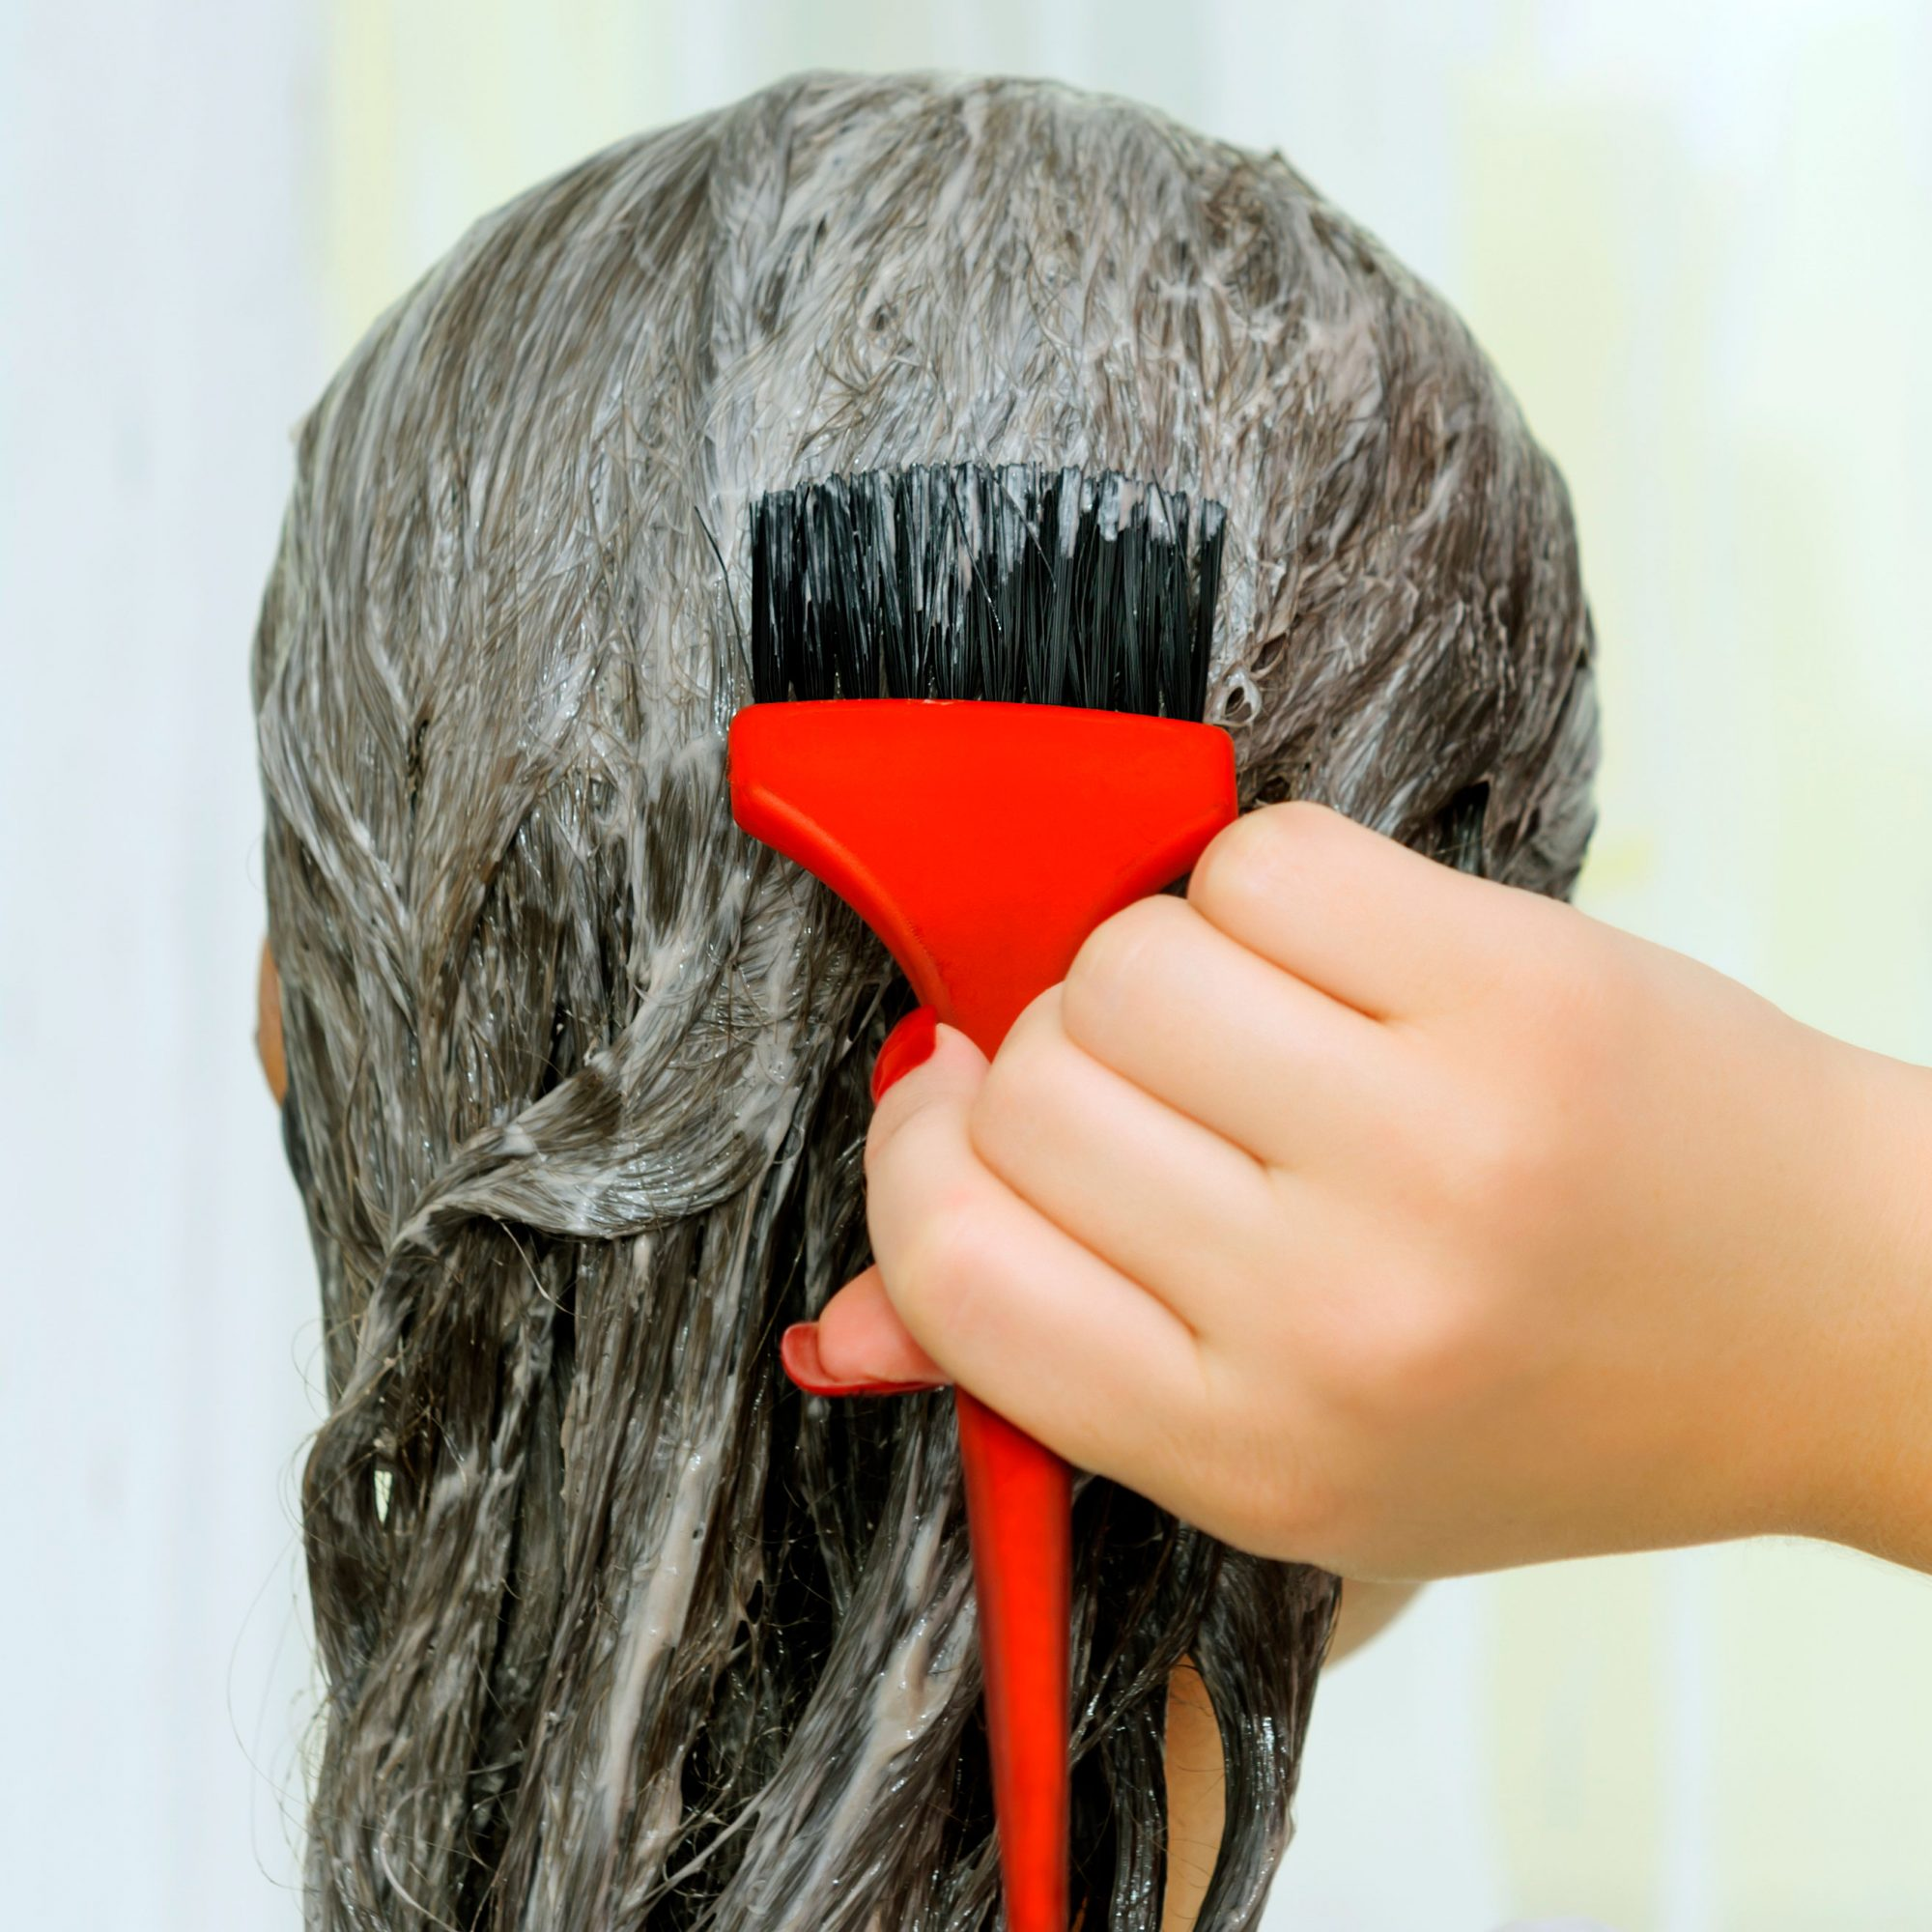 woman applying at-home hair color